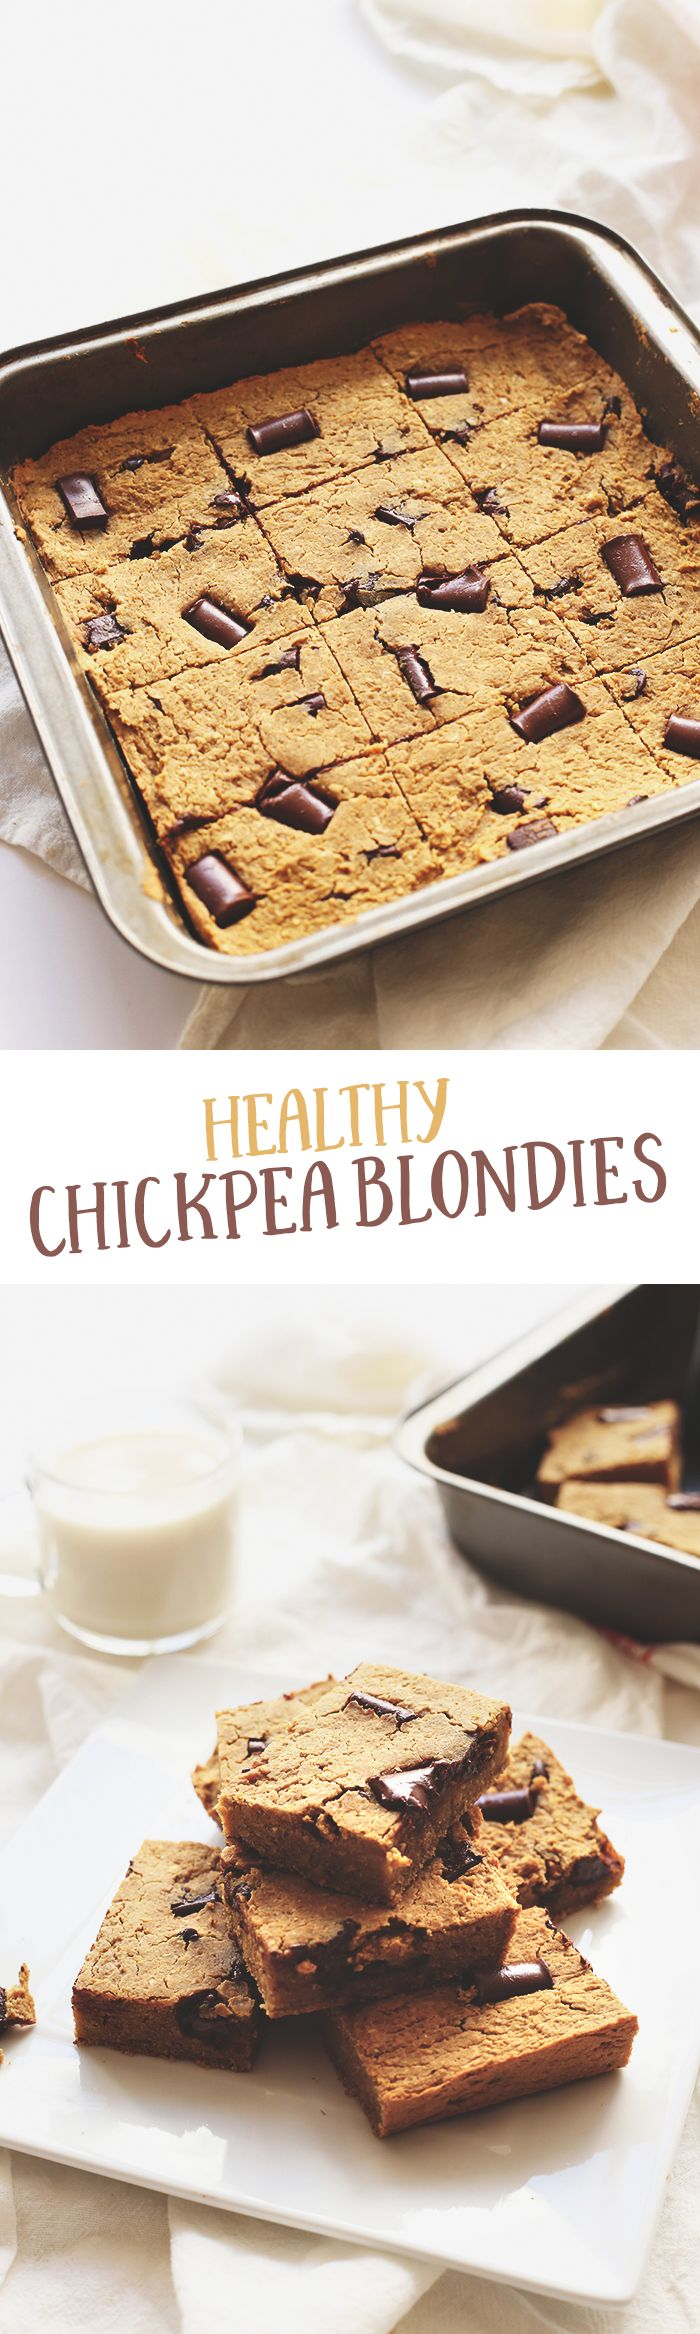 Healthy Chickpea Blondies made from everybodys favourite bean! Theyre gluten-free, high in protein and sweetened with maple syrup. No one will guess that theyre made from chickpeas! These are the perfect chickpea dessert for a healthy dessert alternative. Plus theyre gluten-free too!